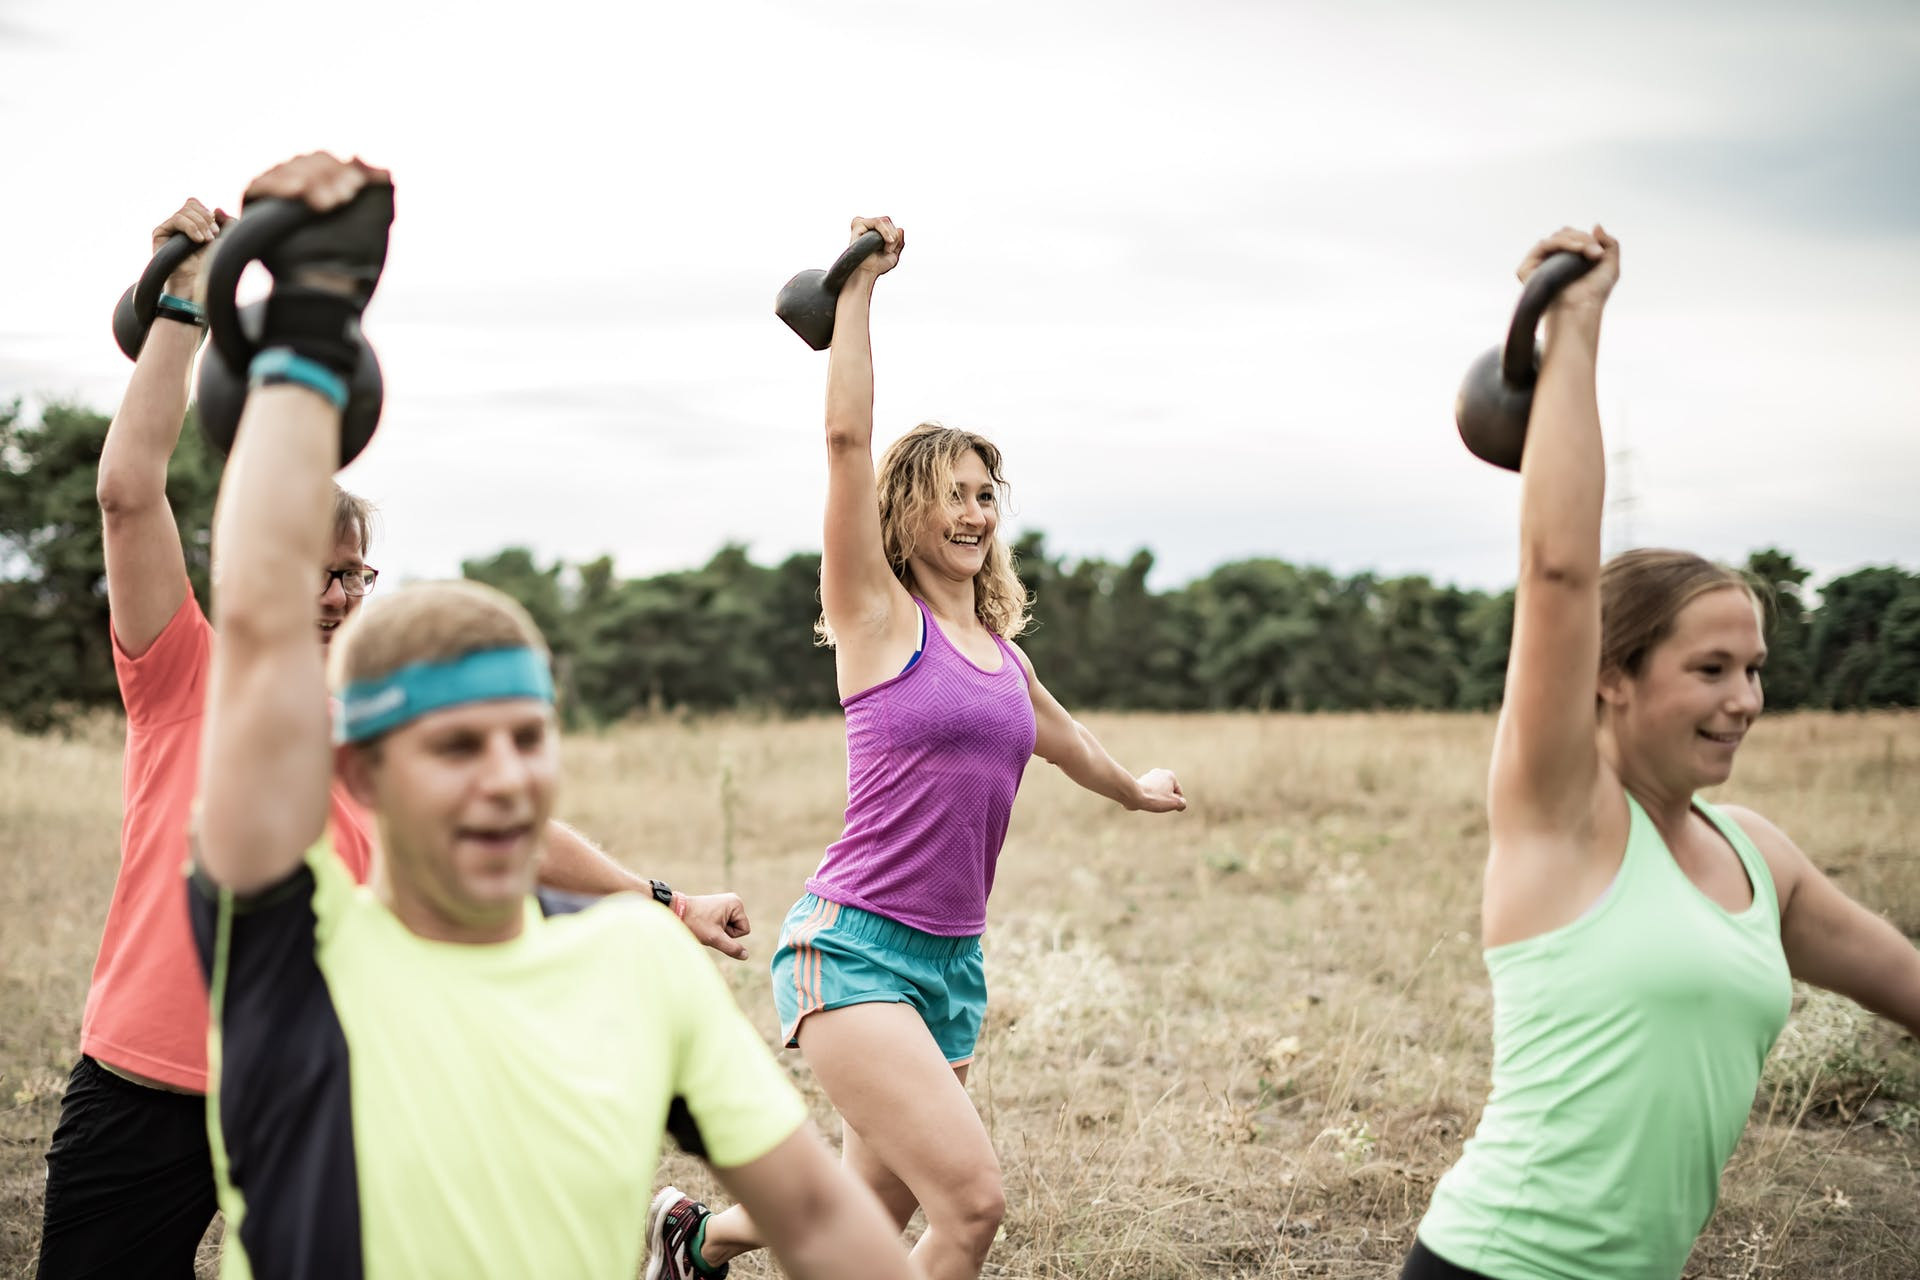 outdoor bootcamp training in duesseldorf